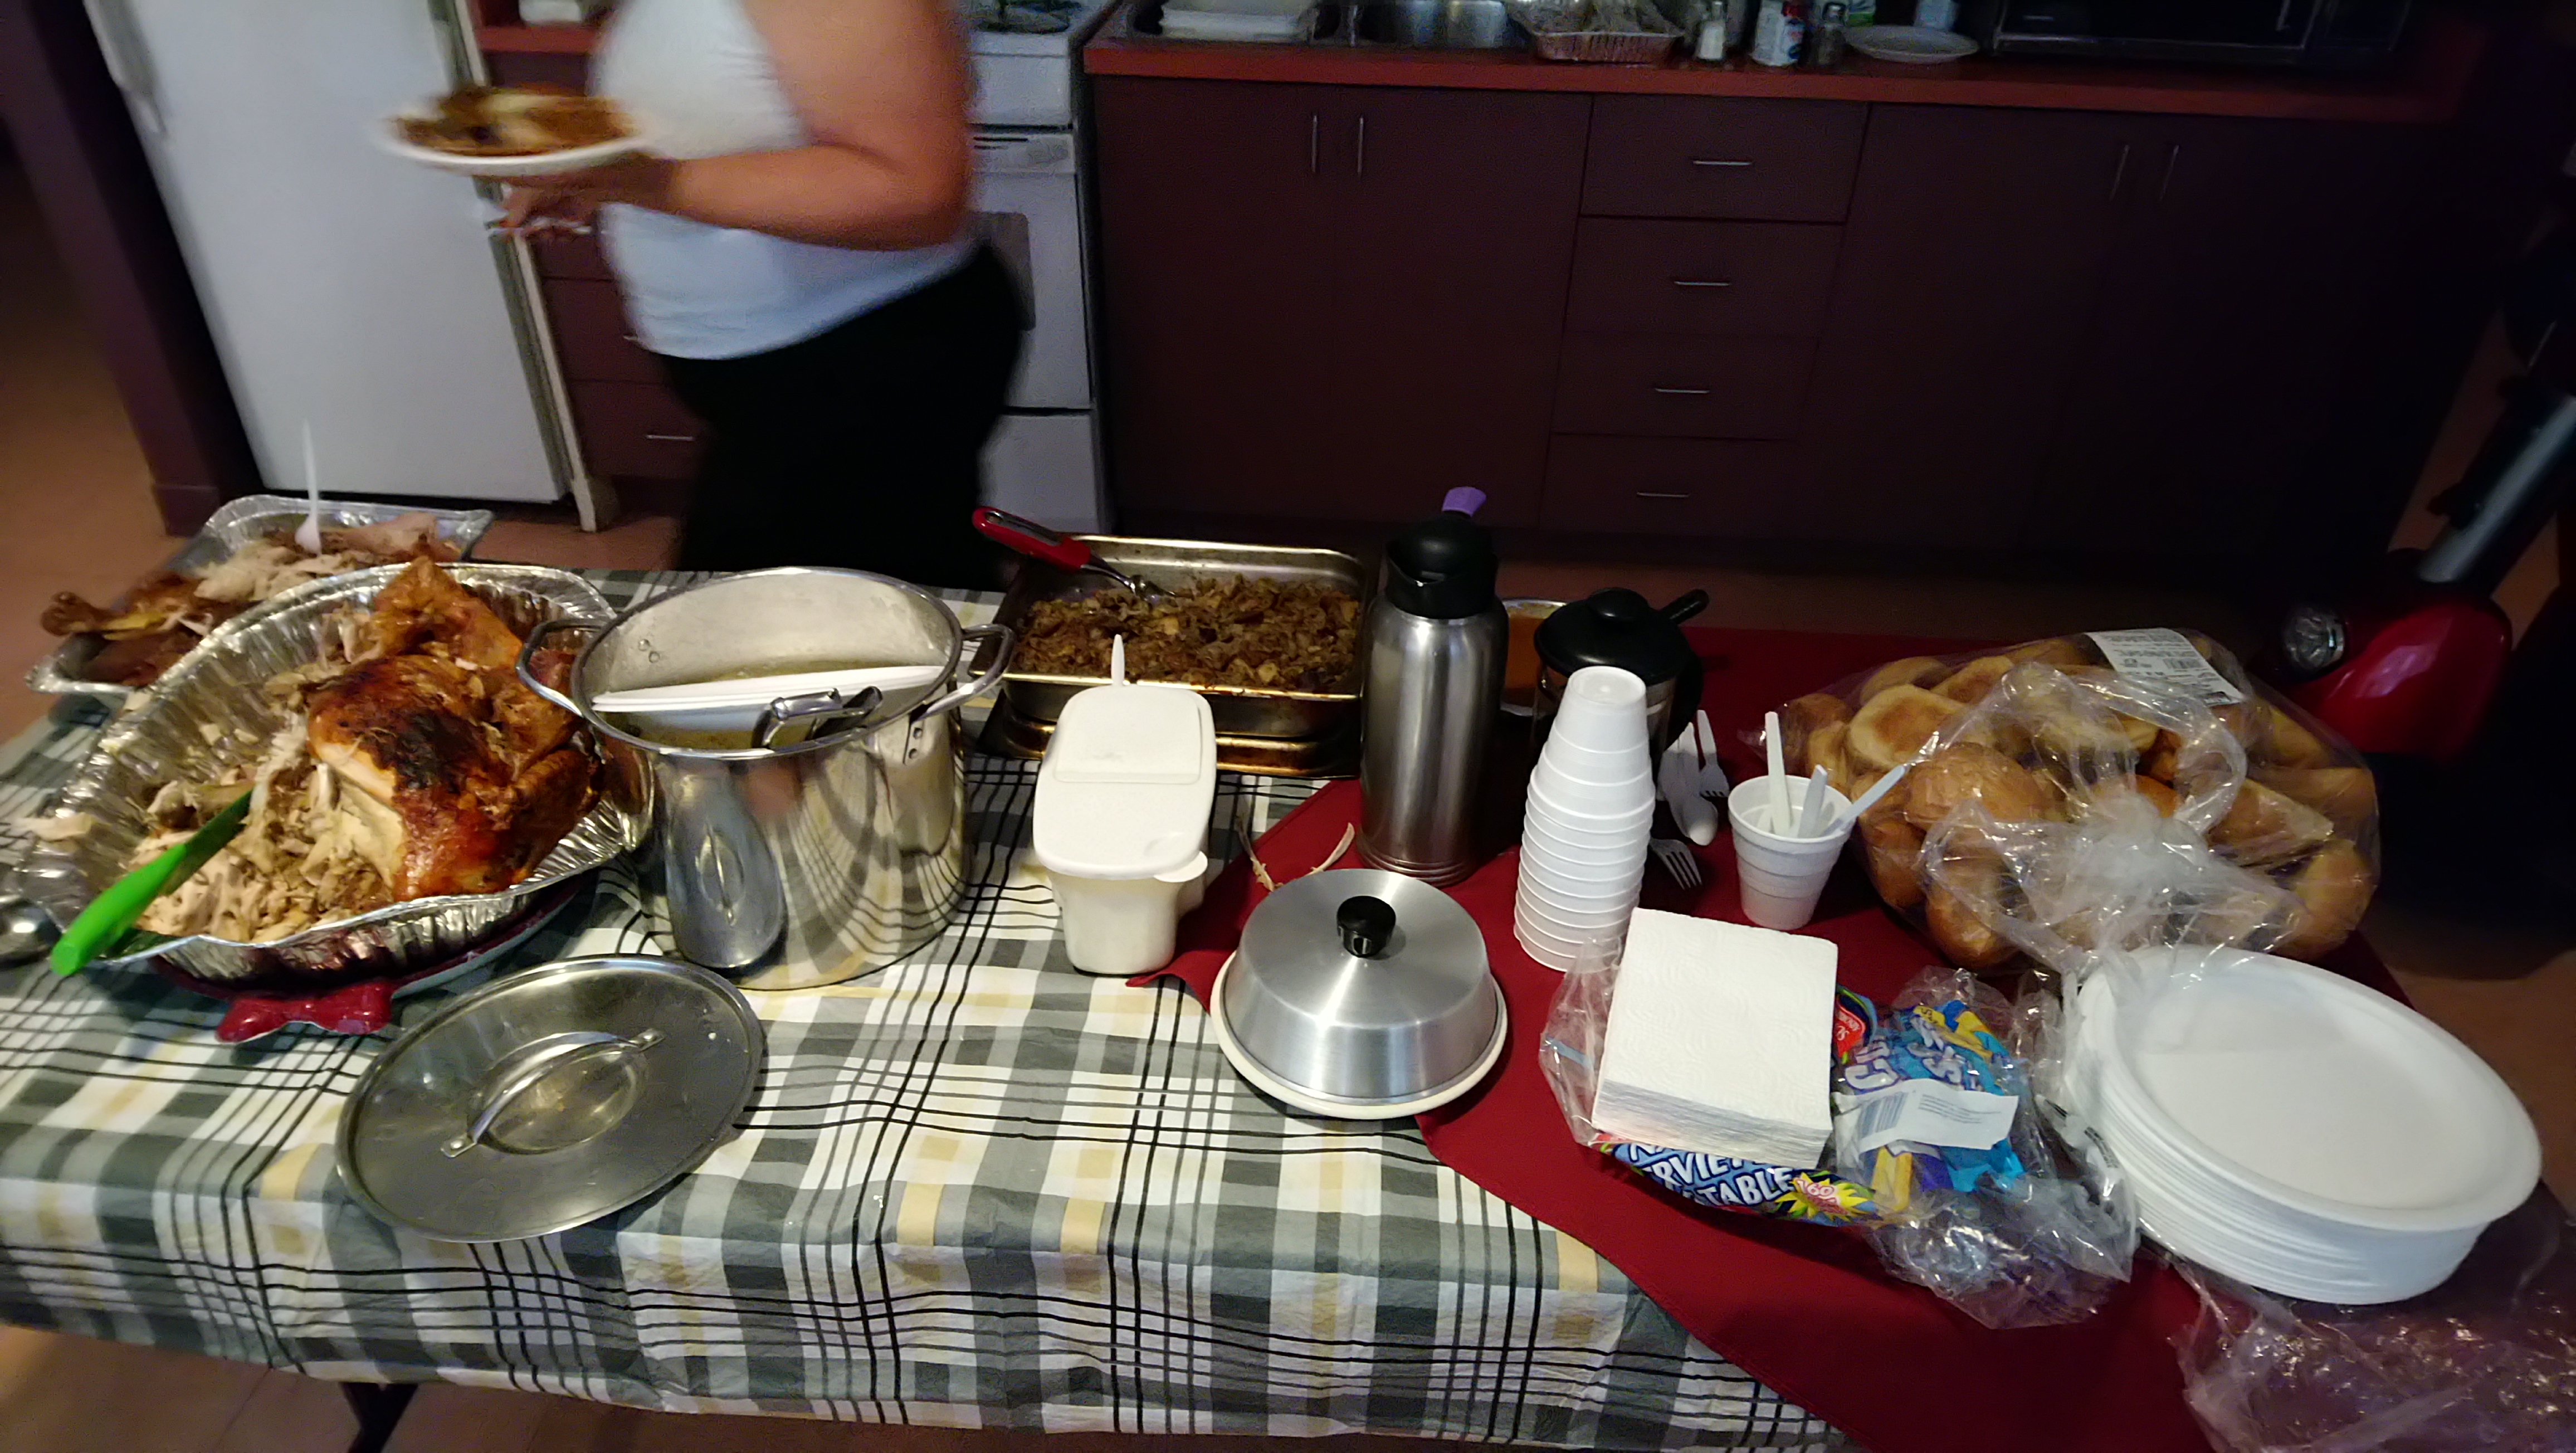 One of the three Tables we laid out our spread on.